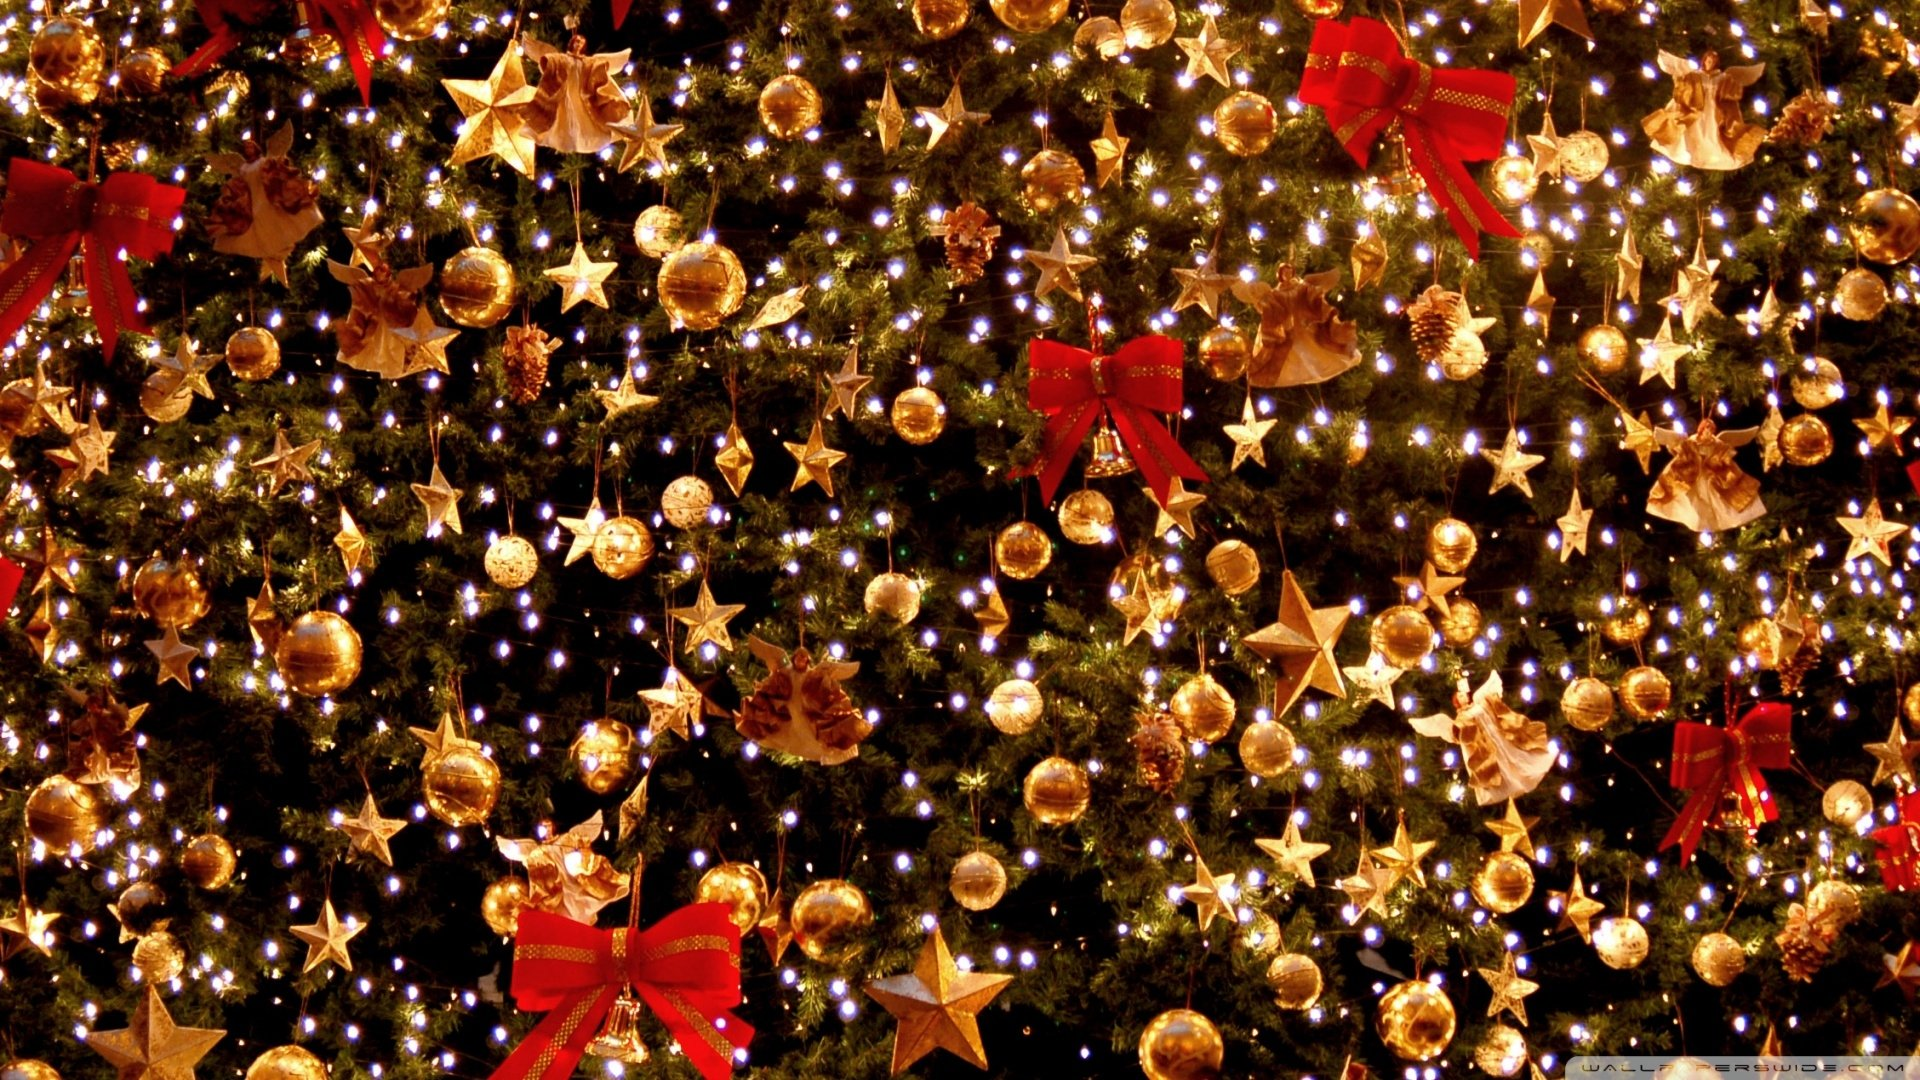 Aesthetic Christmas Background Download